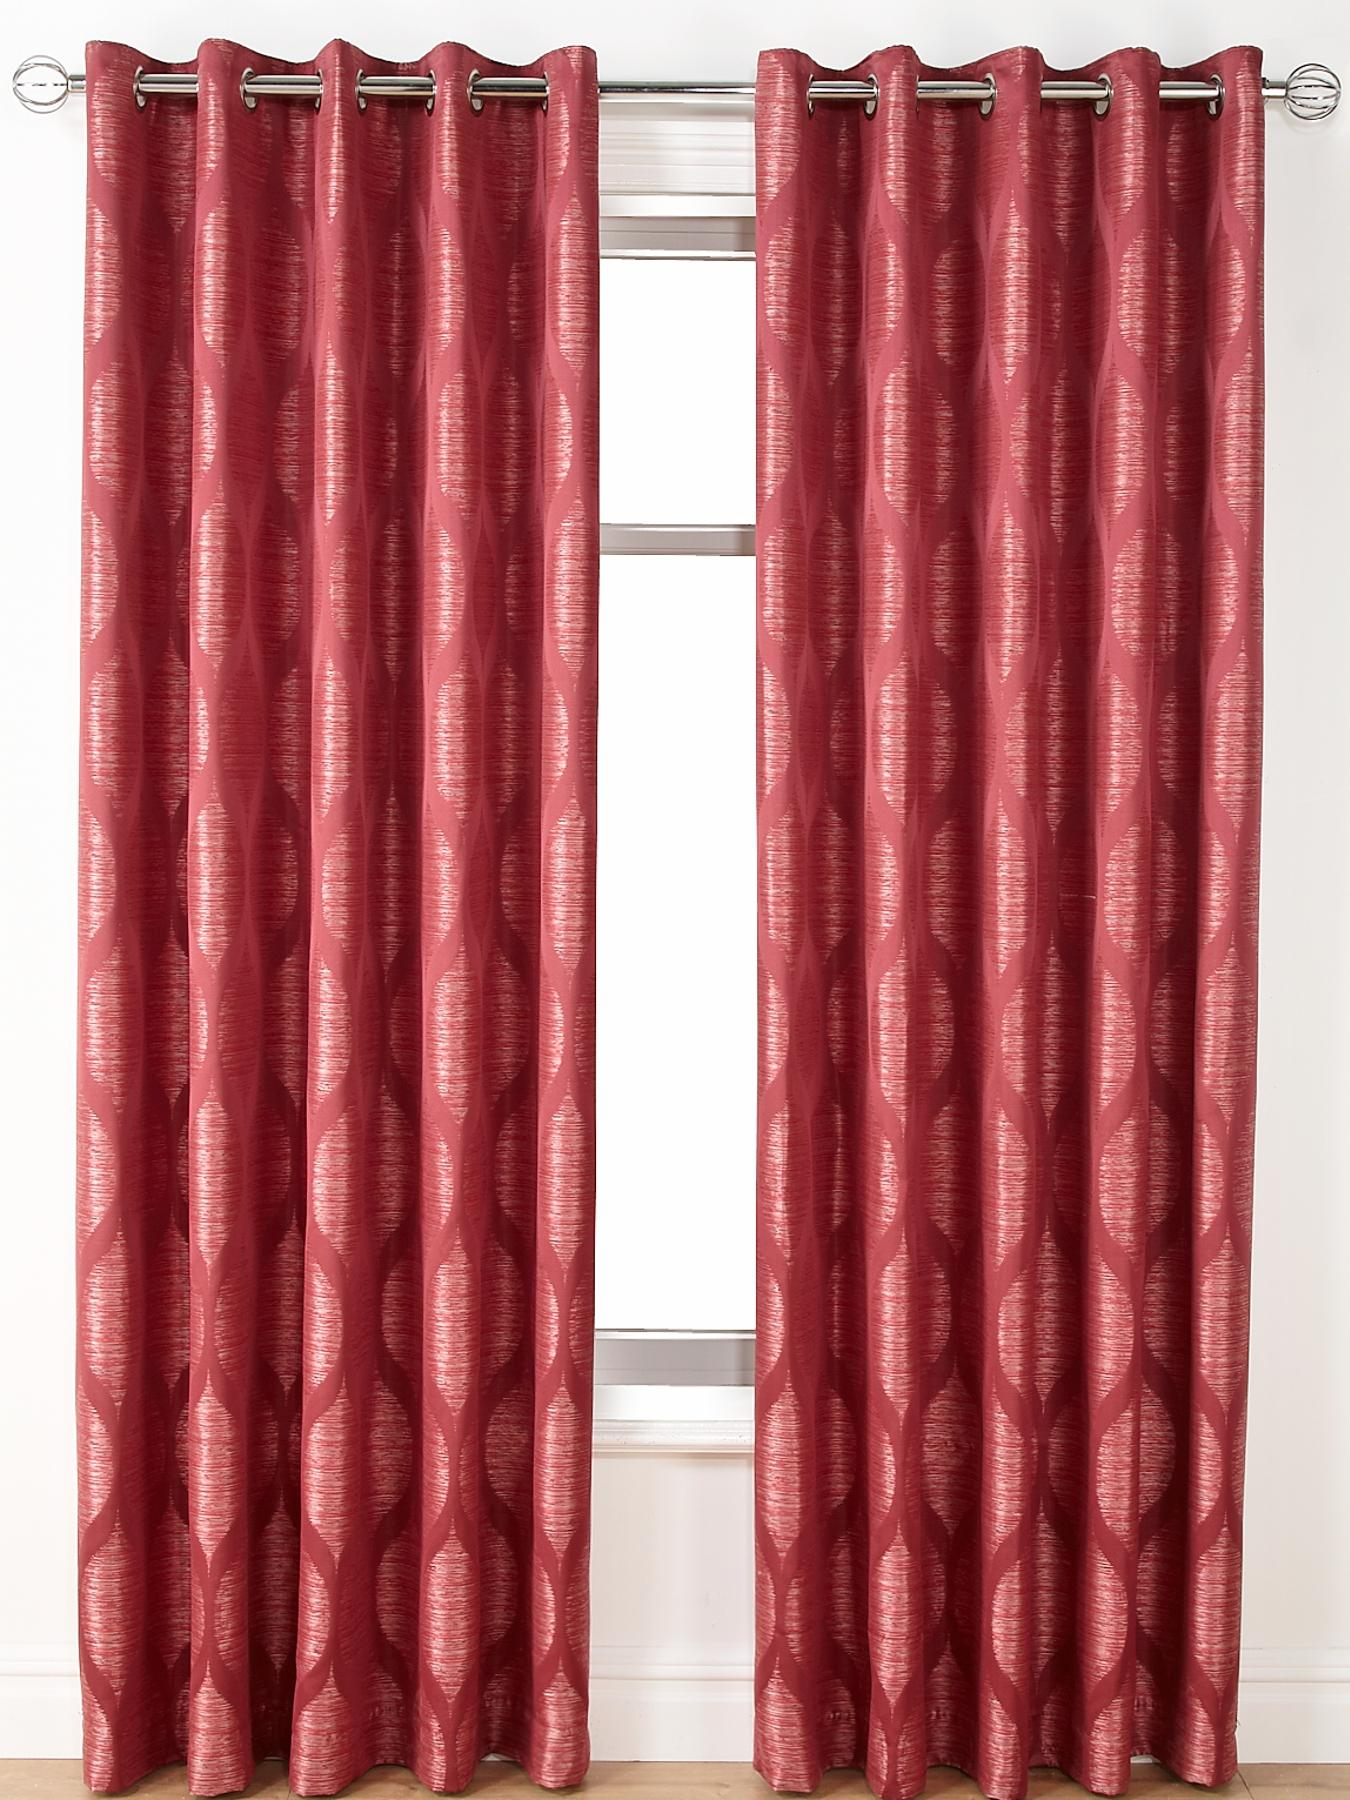 Ogee Jacquard Eyelet Curtains, Chocolate,Black at Littlewoods Home Shopping